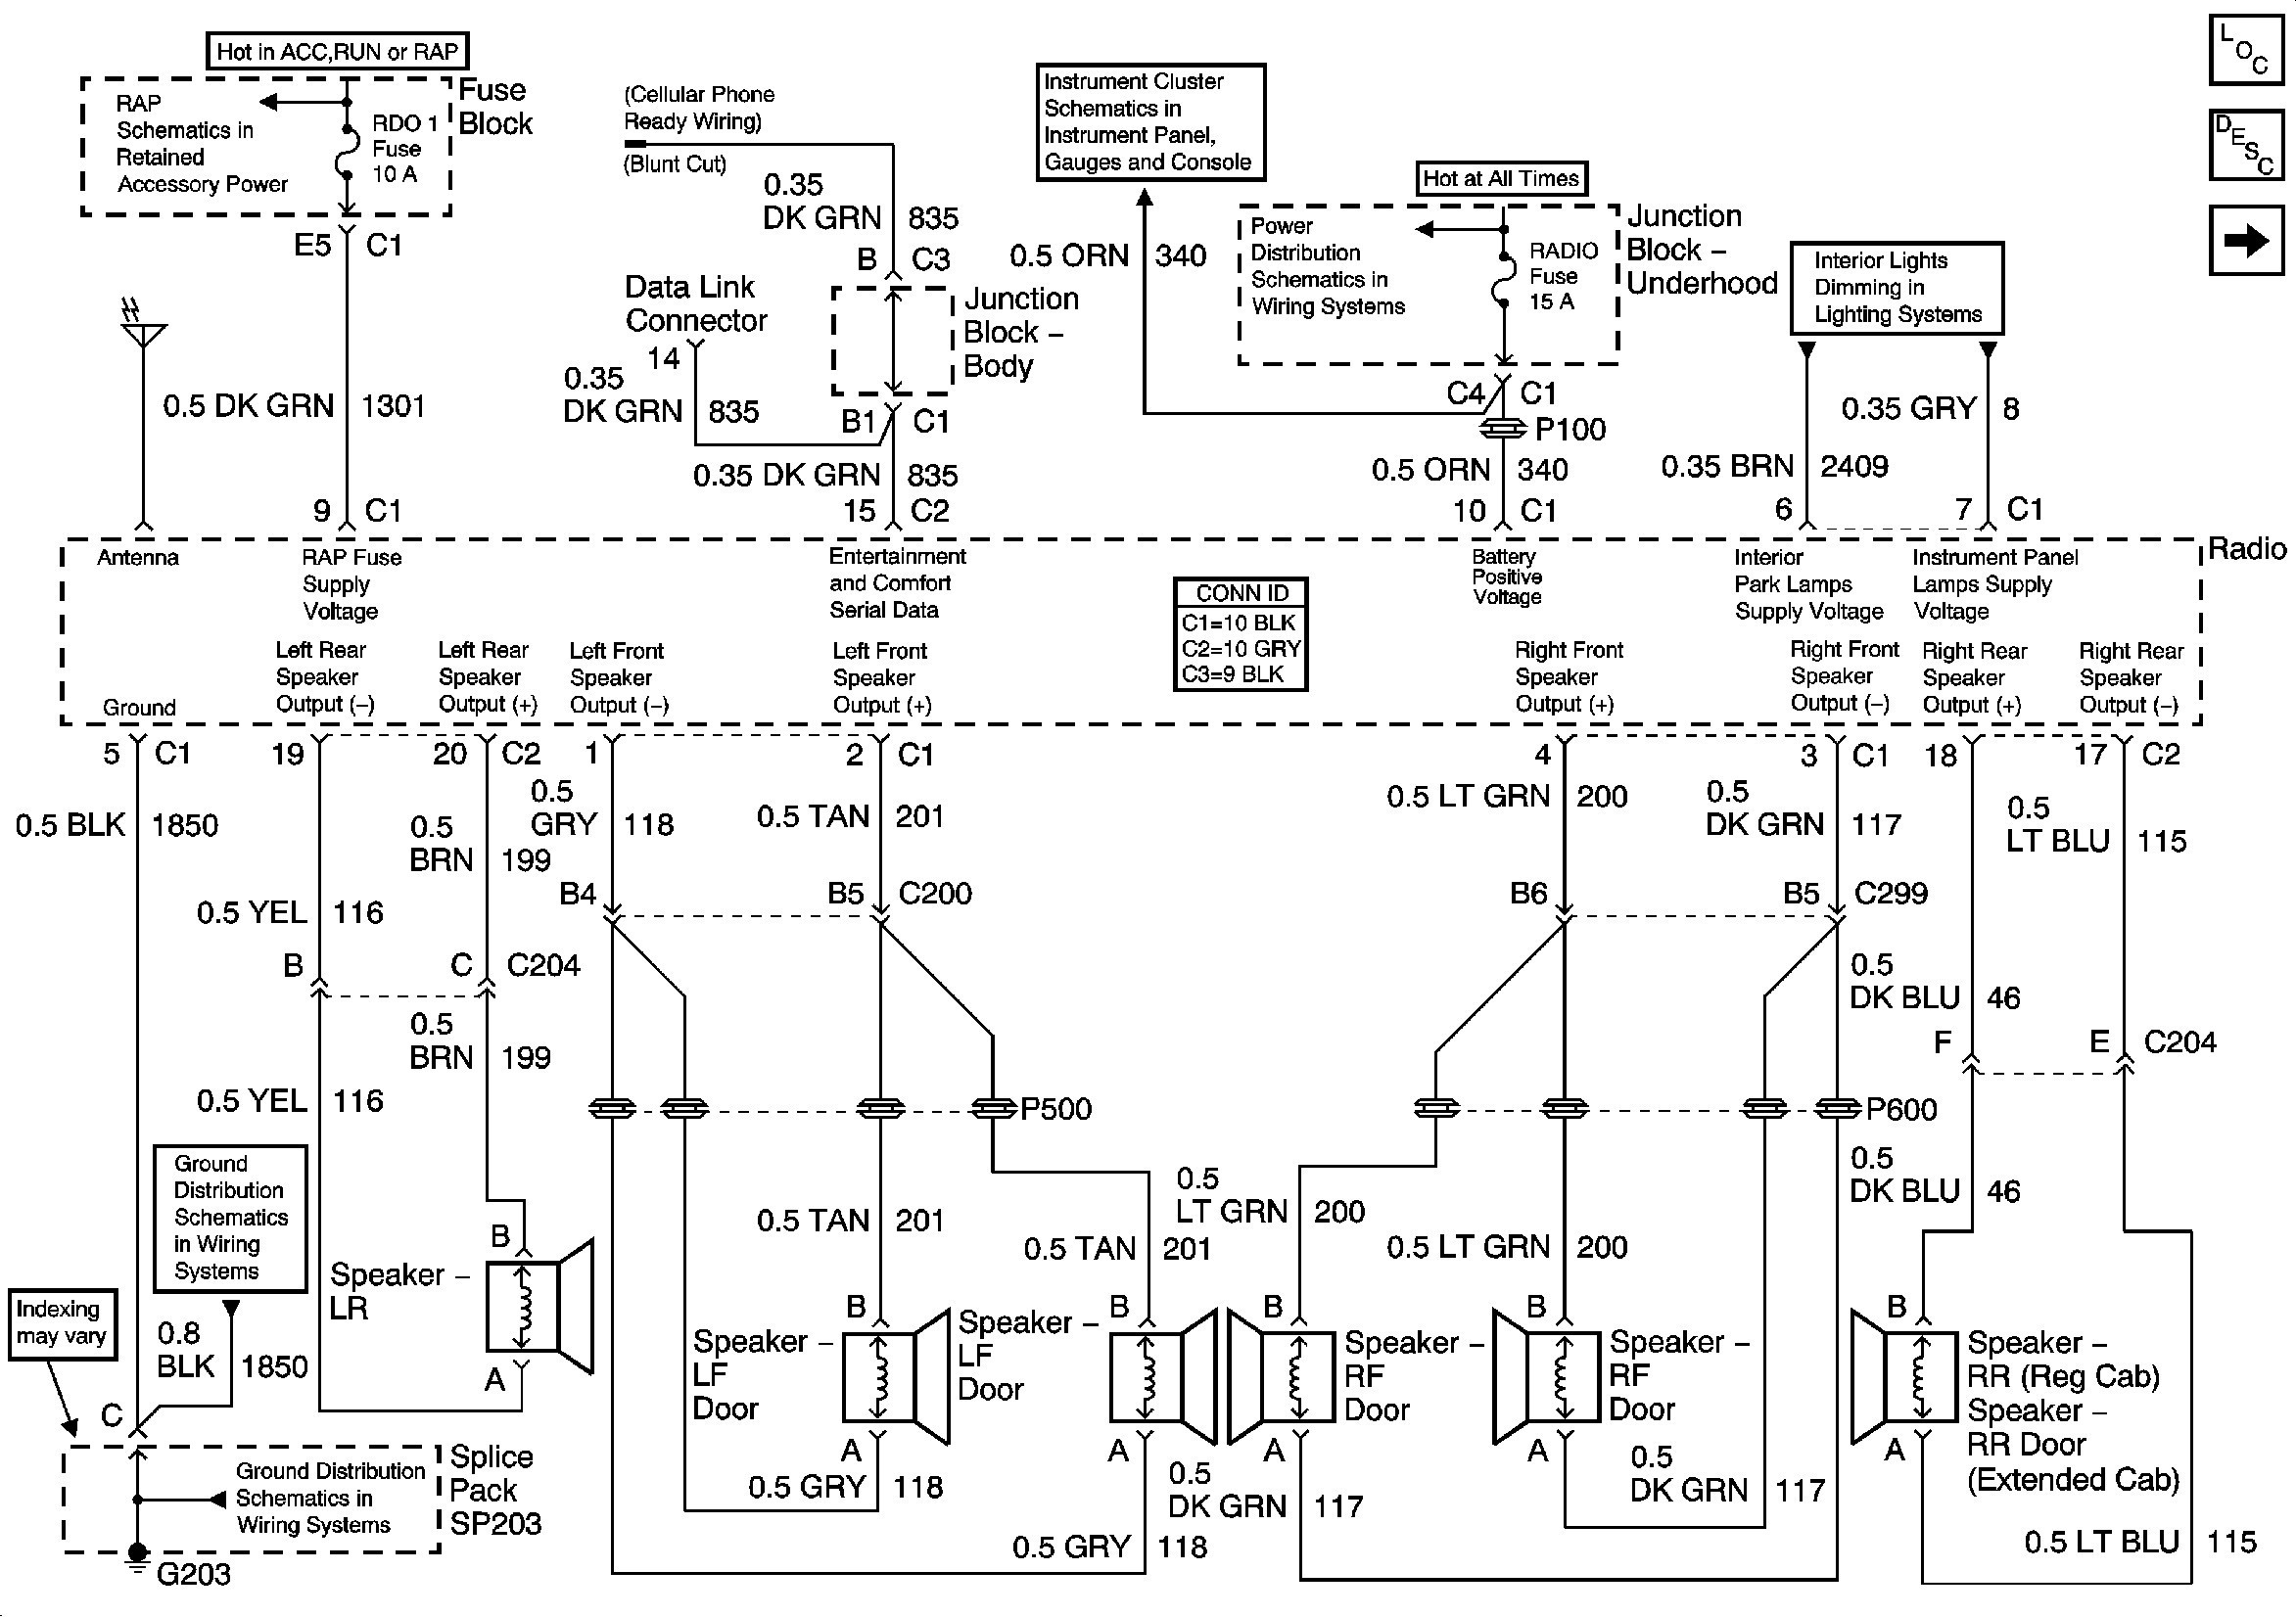 2004 Gmc Sierra Wiring Diagram 2006 Chevy Silverado Wiring Diagram Of 2004 Gmc Sierra Wiring Diagram